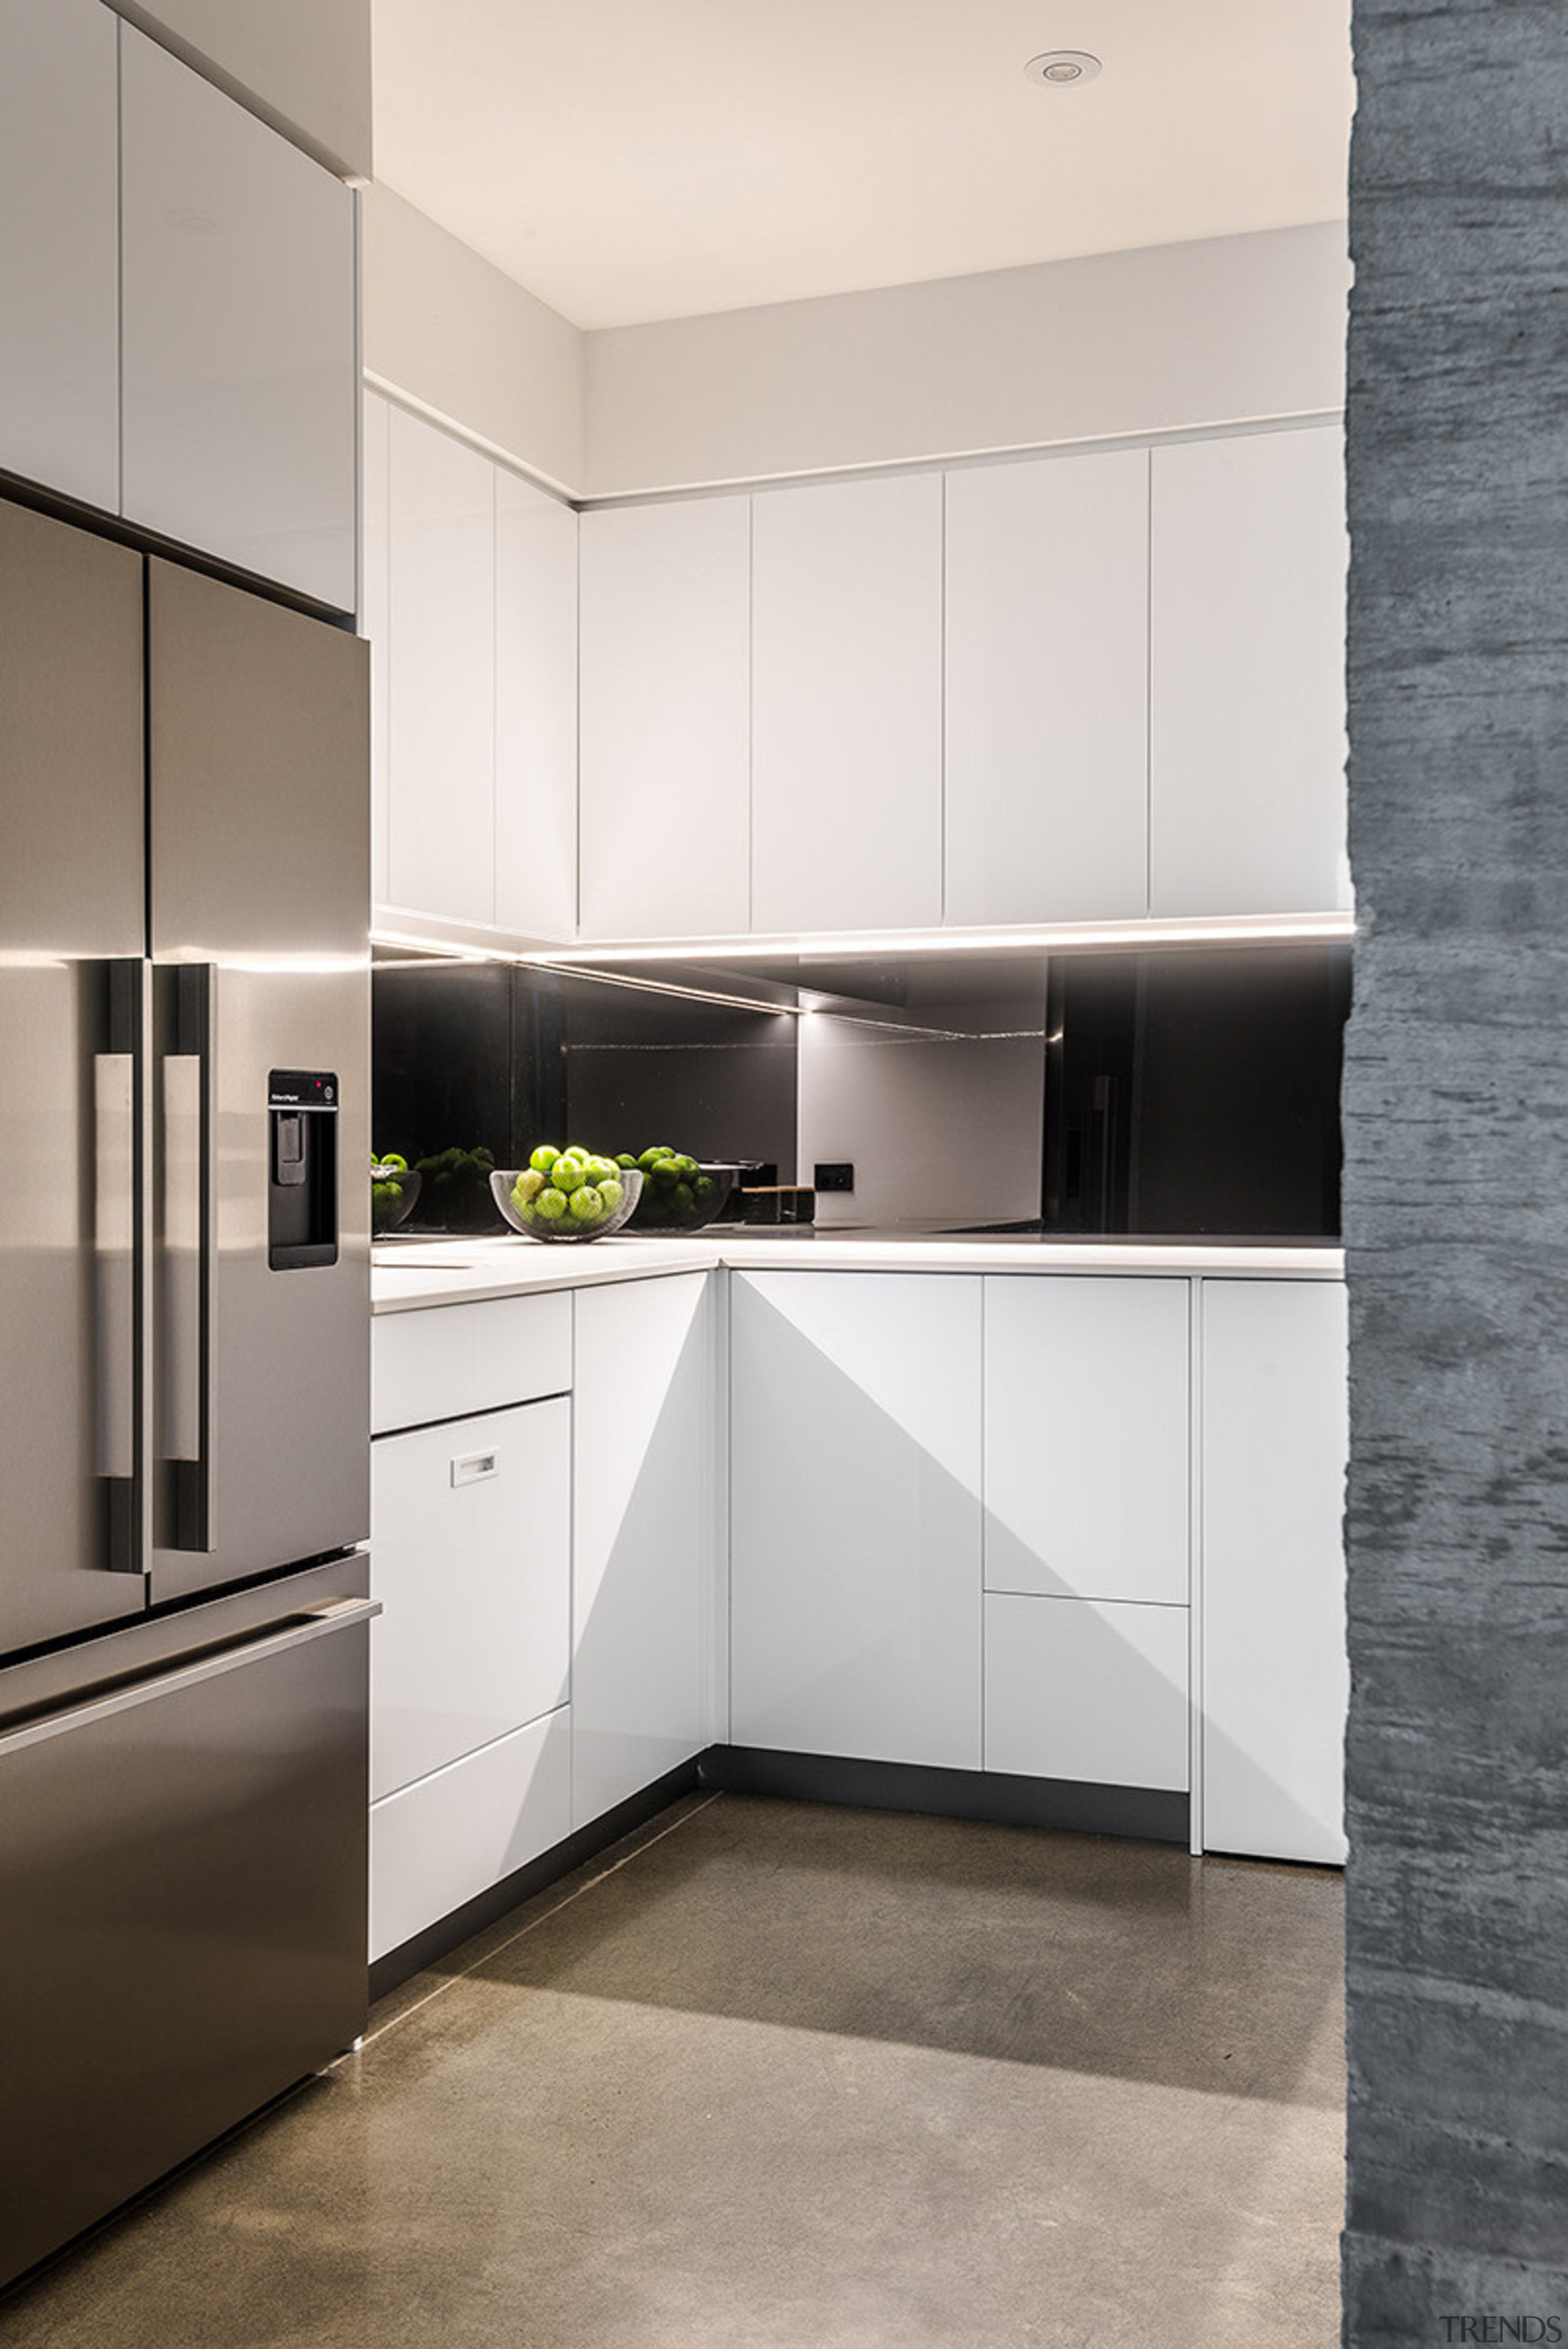 A large walk-in pantry in this new kitchen cabinetry, countertop, floor, home appliance, interior design, kitchen, white, gray